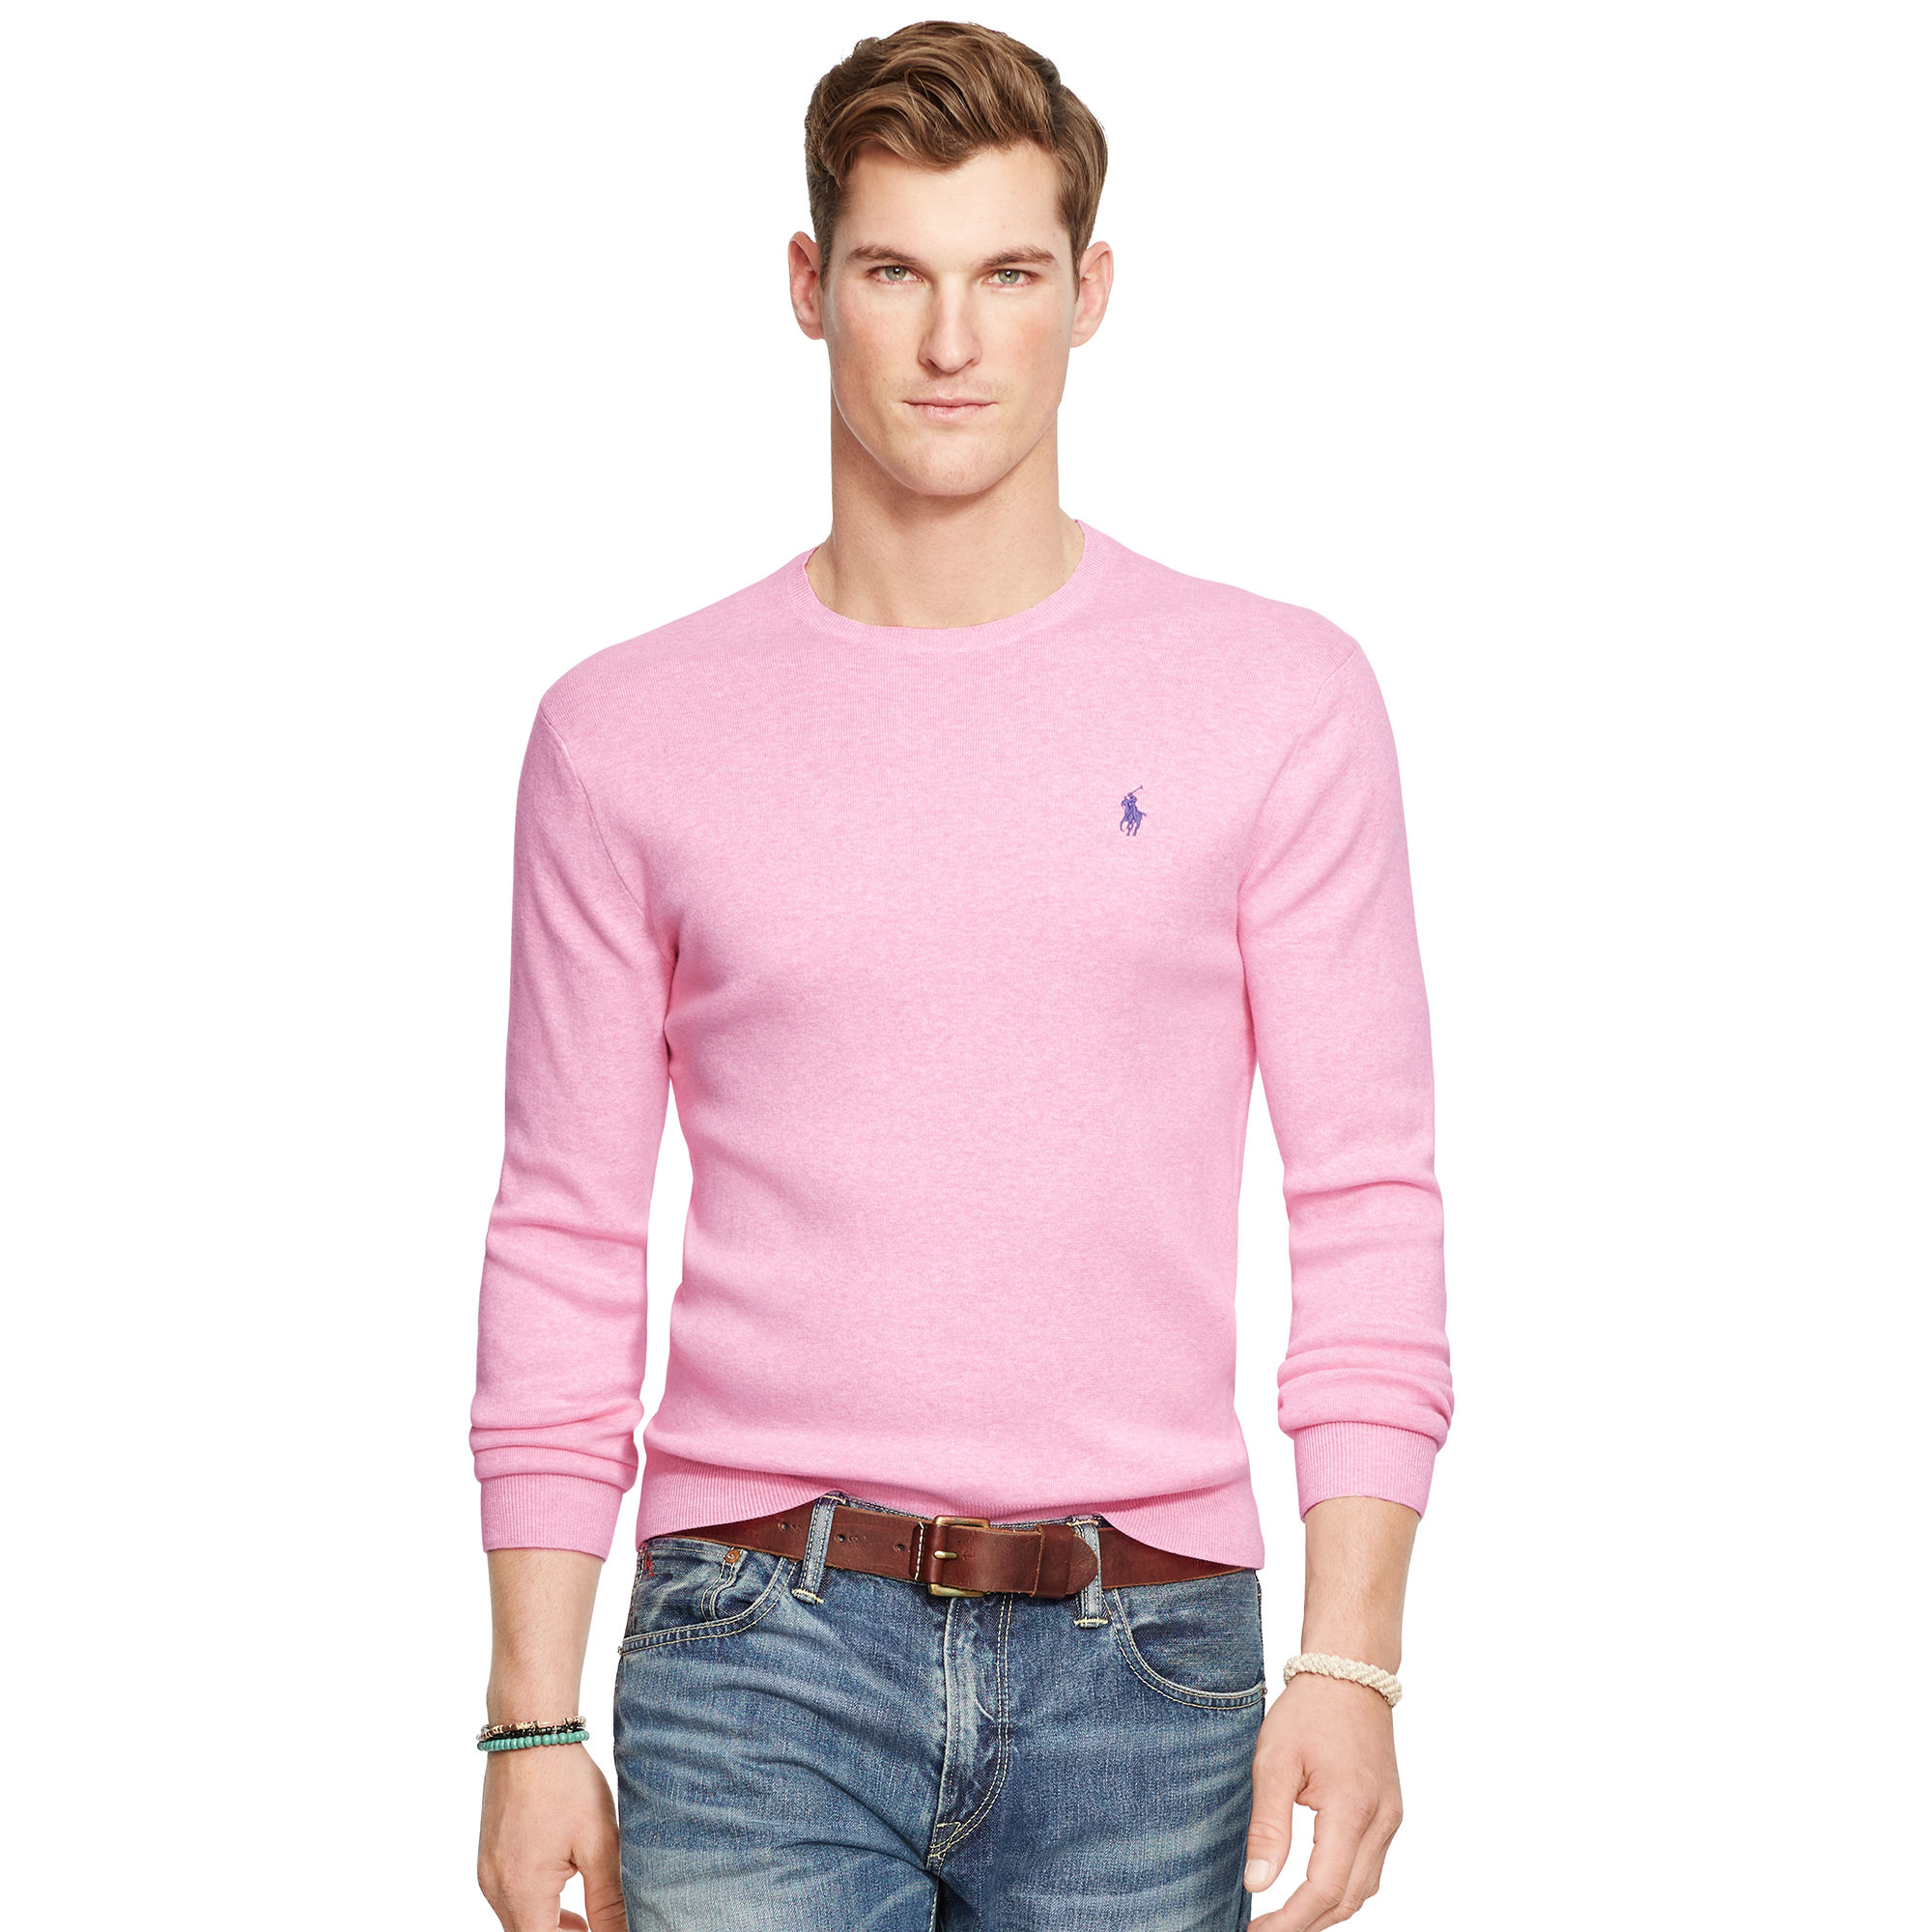 65a4dfff3eb49 Polo Ralph Lauren Pima Cotton Crewneck Sweater in Pink for Men - Lyst